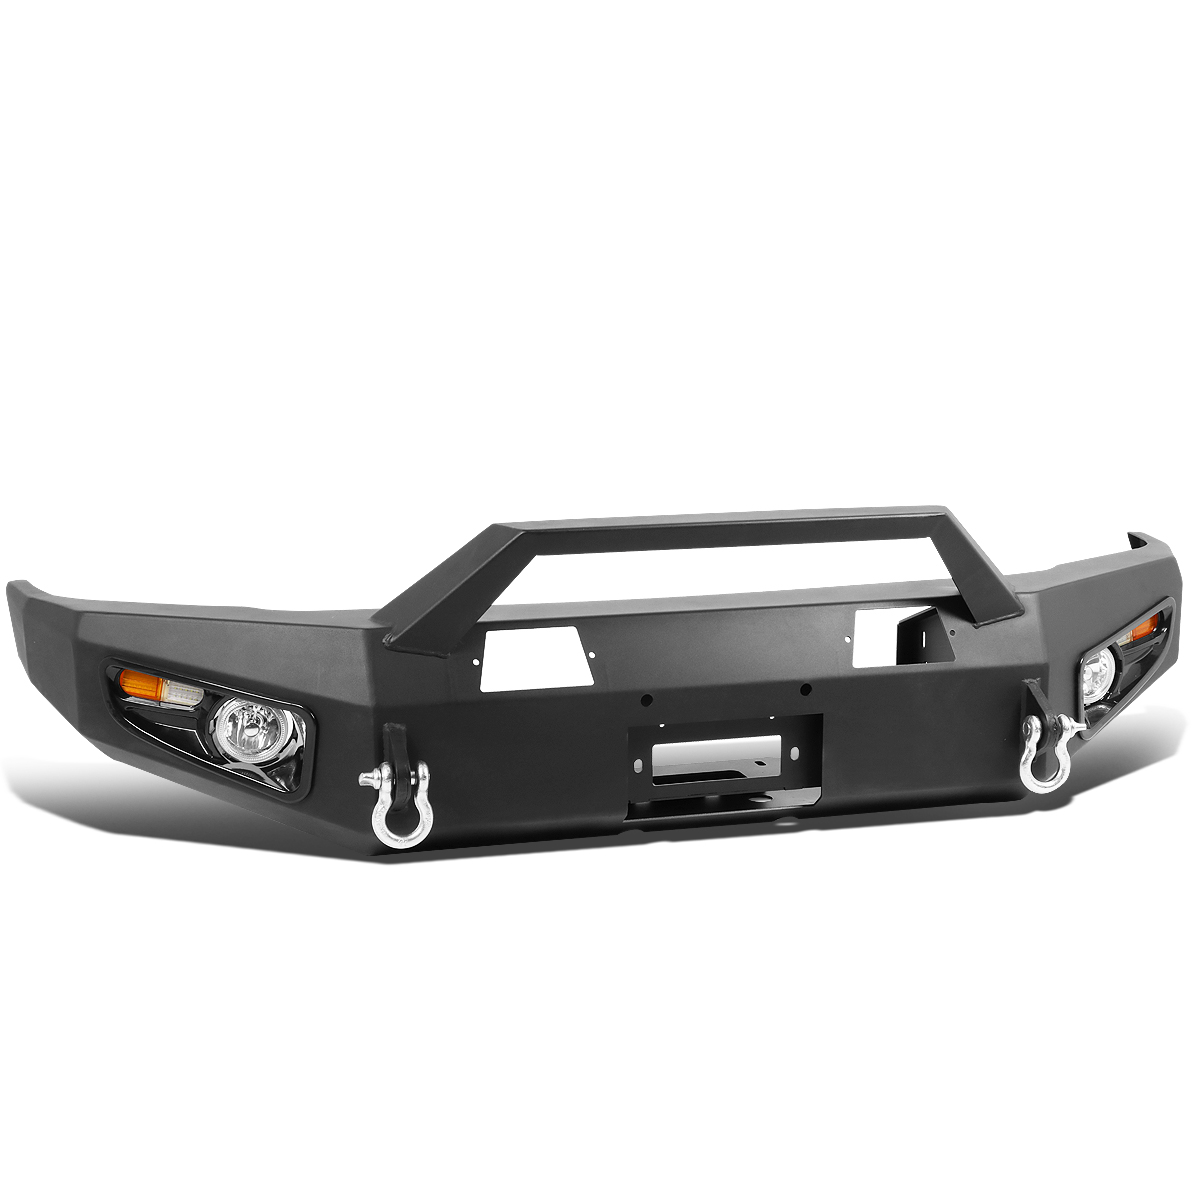 14 17 Toyota Tundra Front Bumper Protector Grill Guard W Shackles Led Drl Switch Wiring Turn Signal Fog Lights